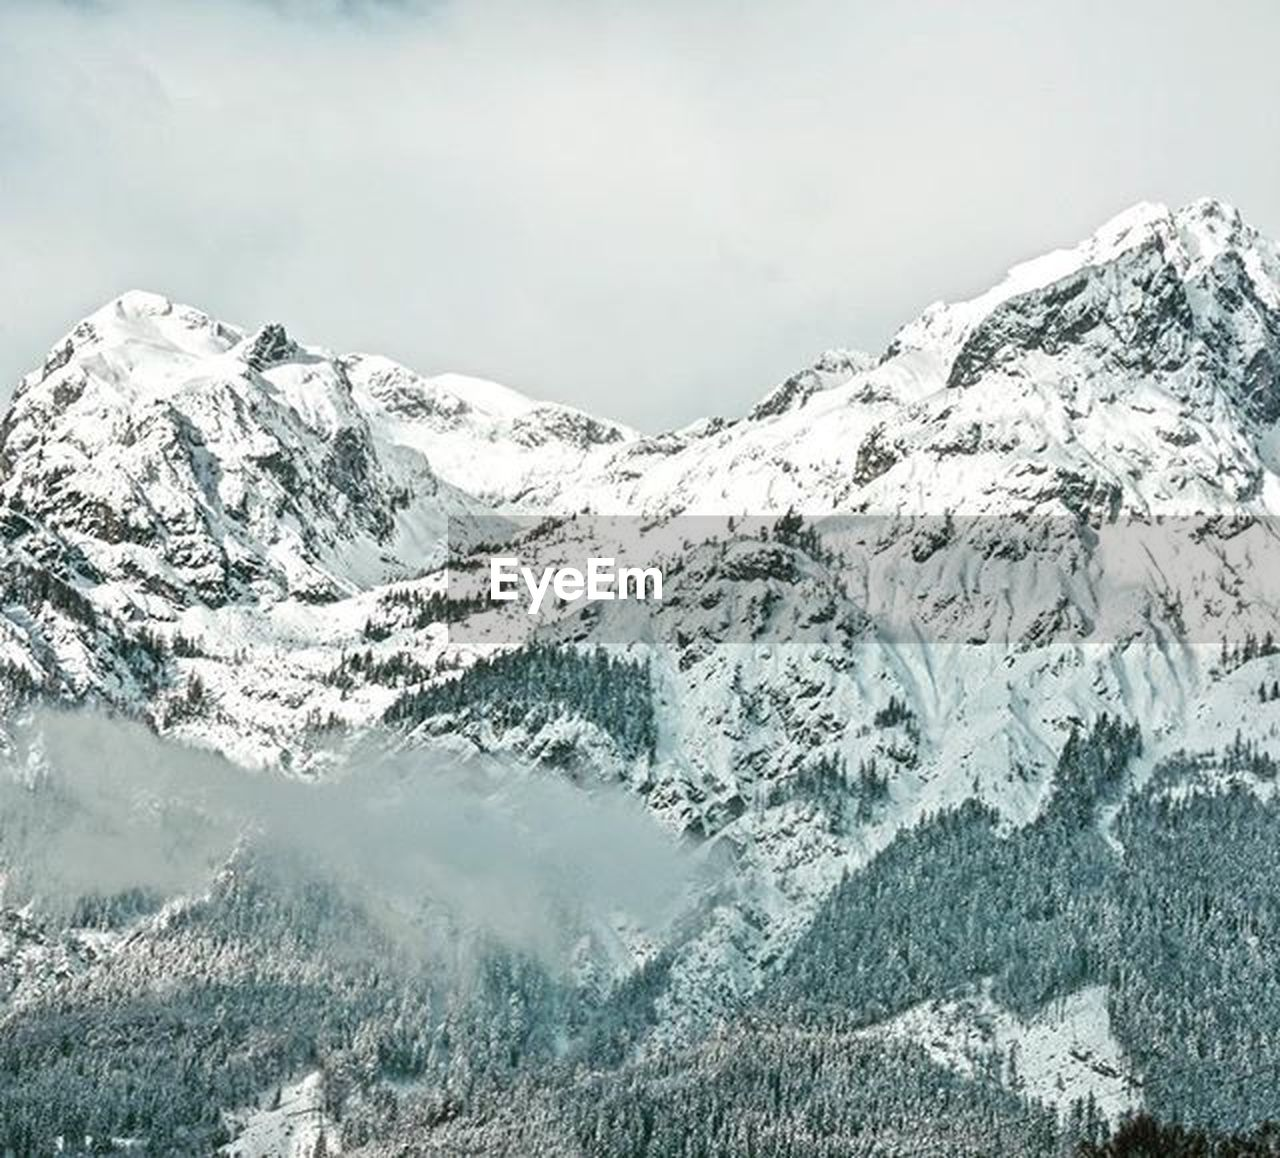 snow, mountain, beauty in nature, nature, cold temperature, scenics, winter, snowcapped mountain, mountain range, no people, tranquil scene, outdoors, landscape, water, glacier, day, sky